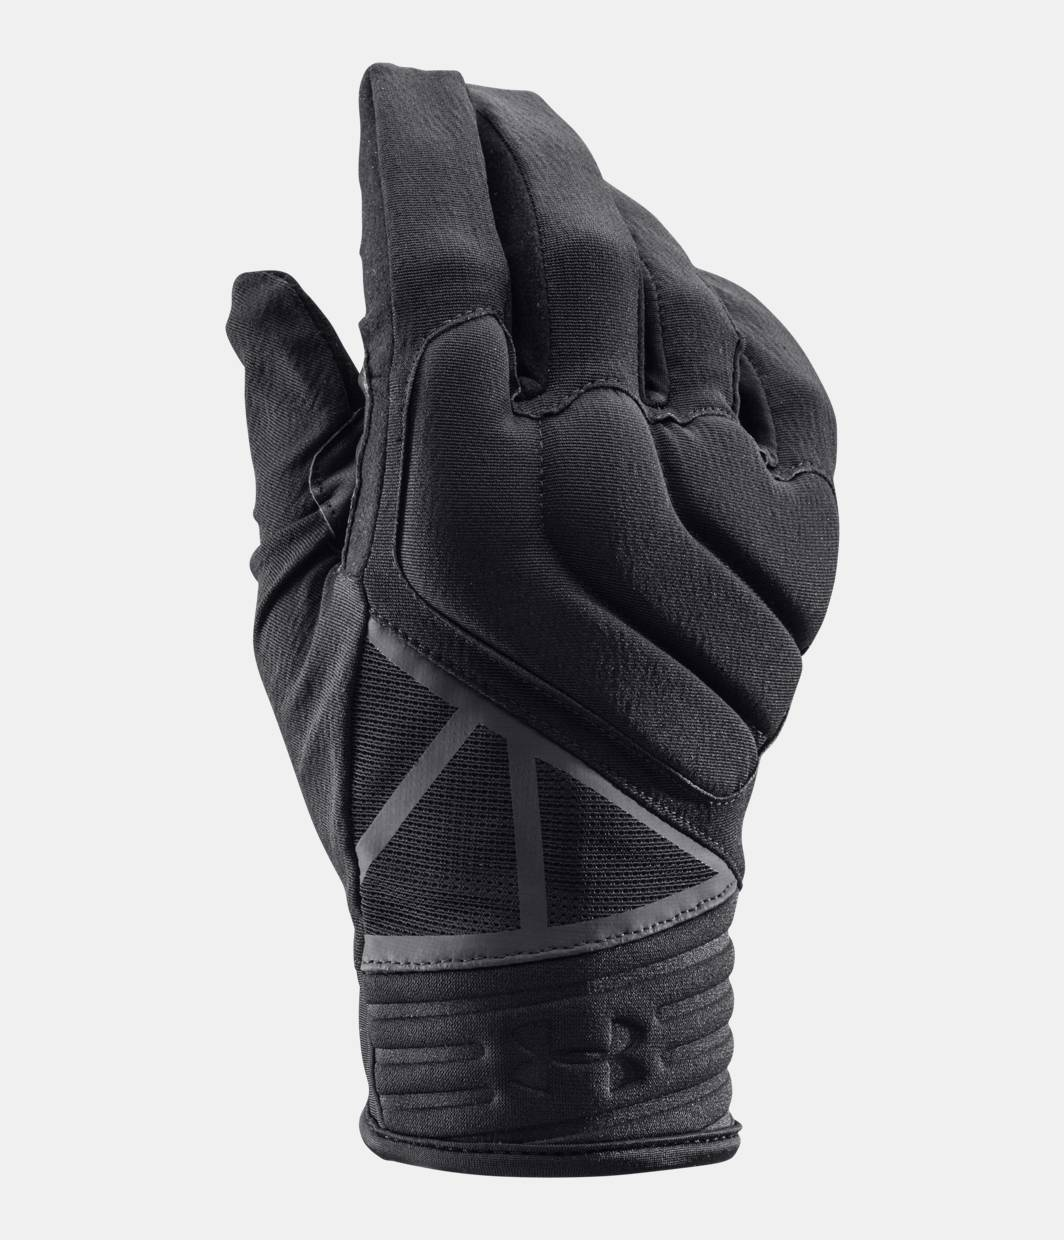 Black leather gloves meaning - Men S Ua Tactical Duty Gloves Black Zoomed Image